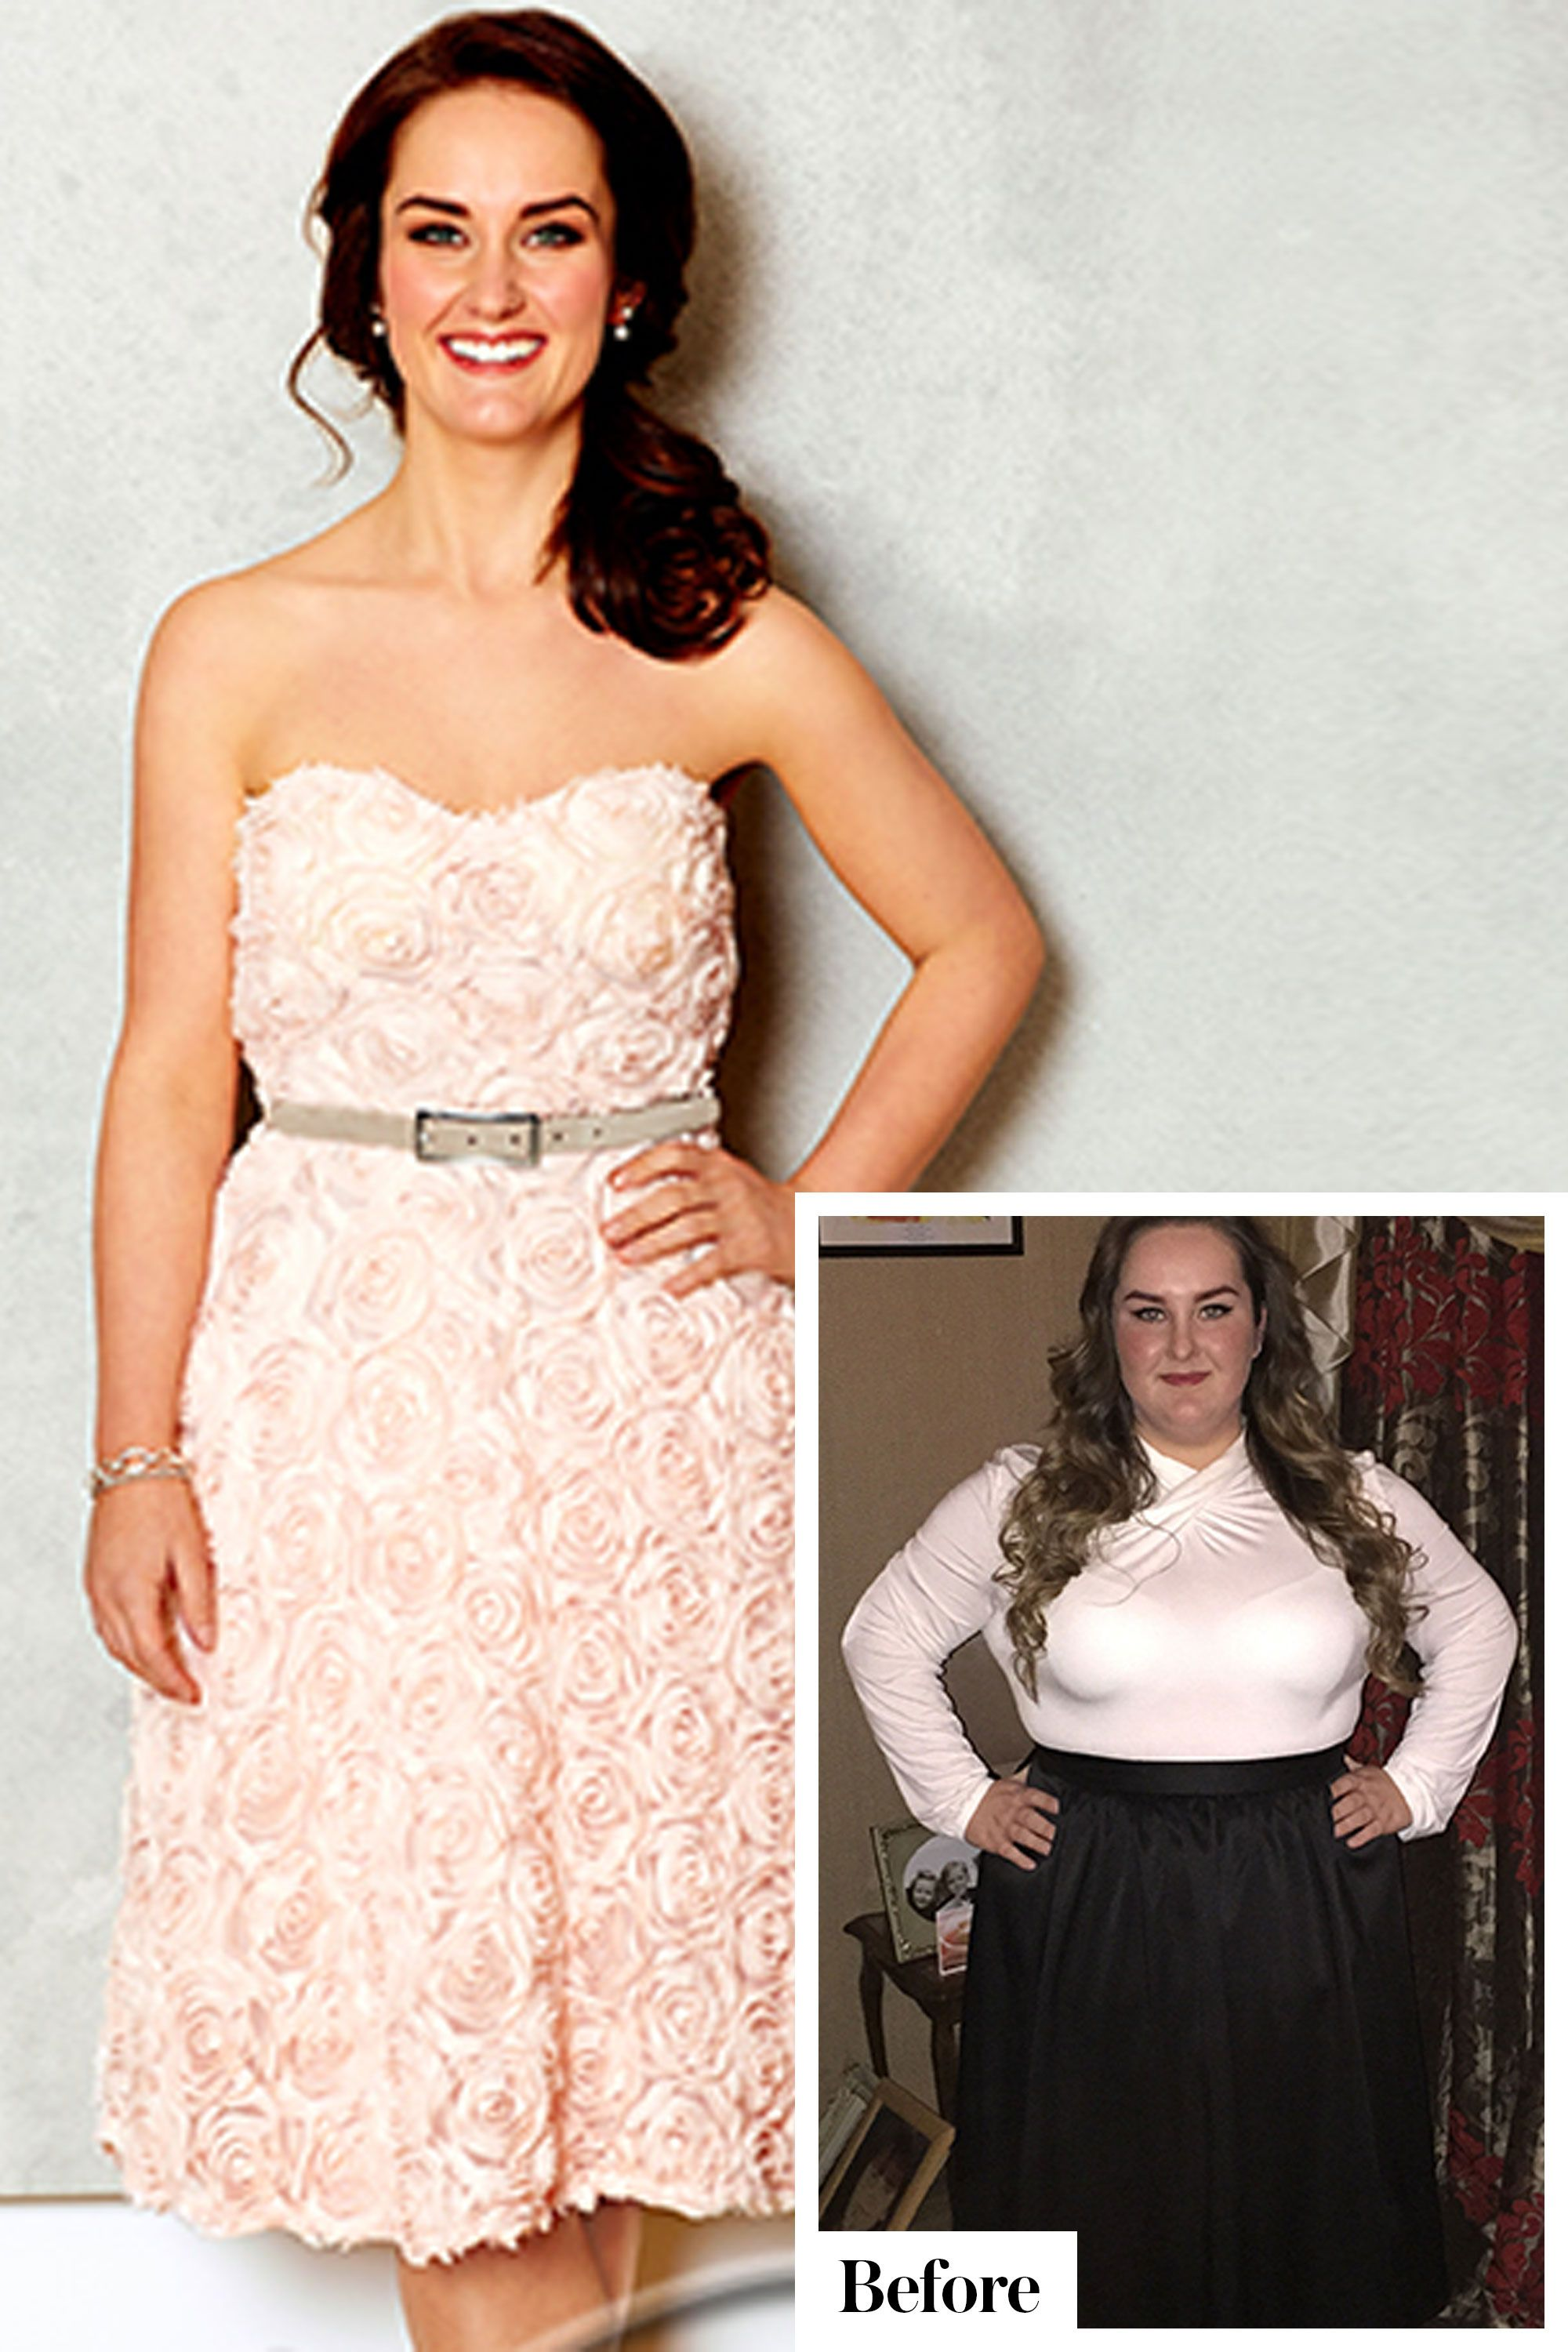 15 Weight Loss Success Stories from Women Who Lost Weight